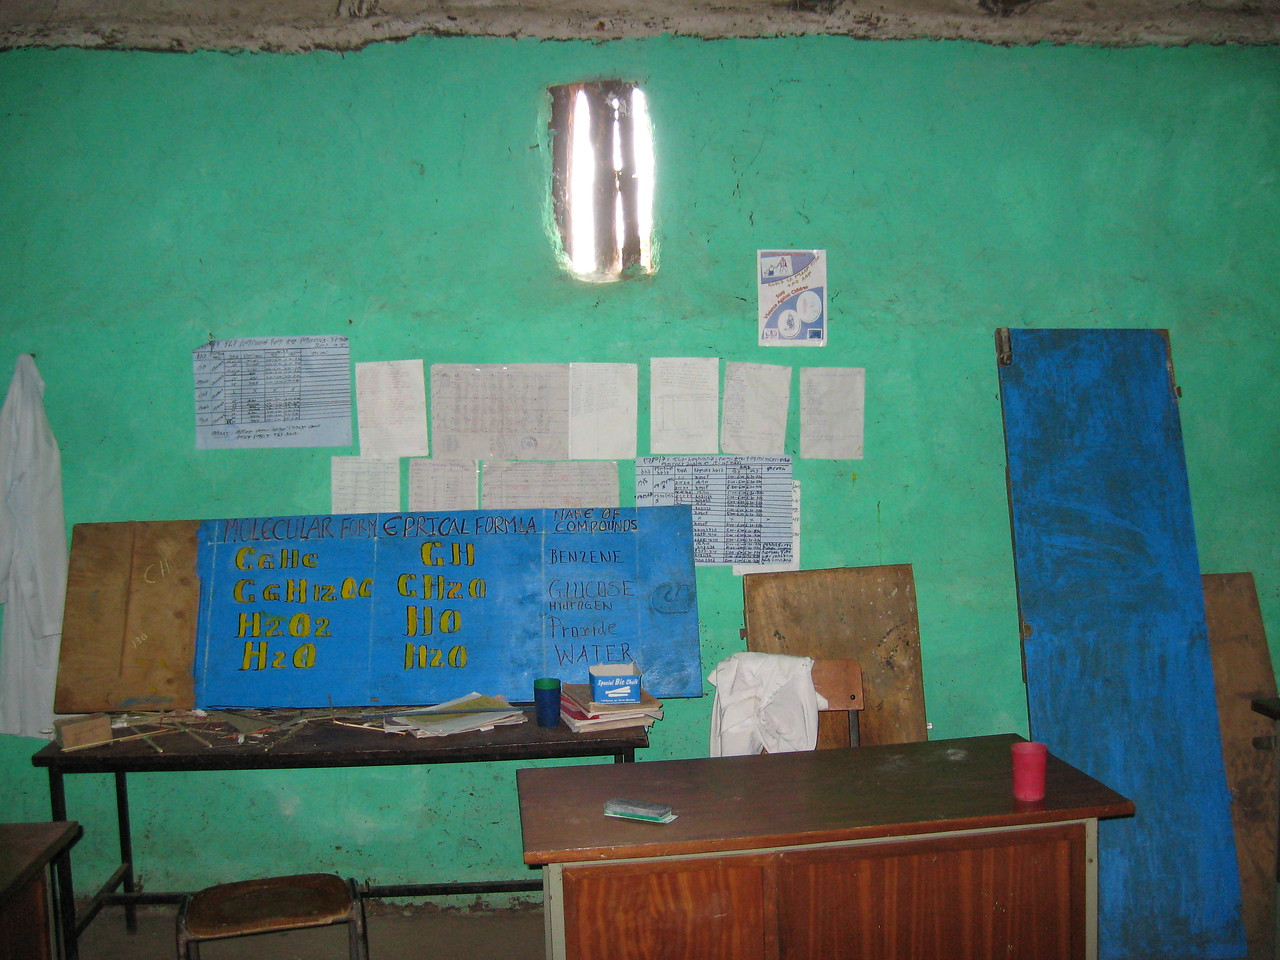 School science classroom